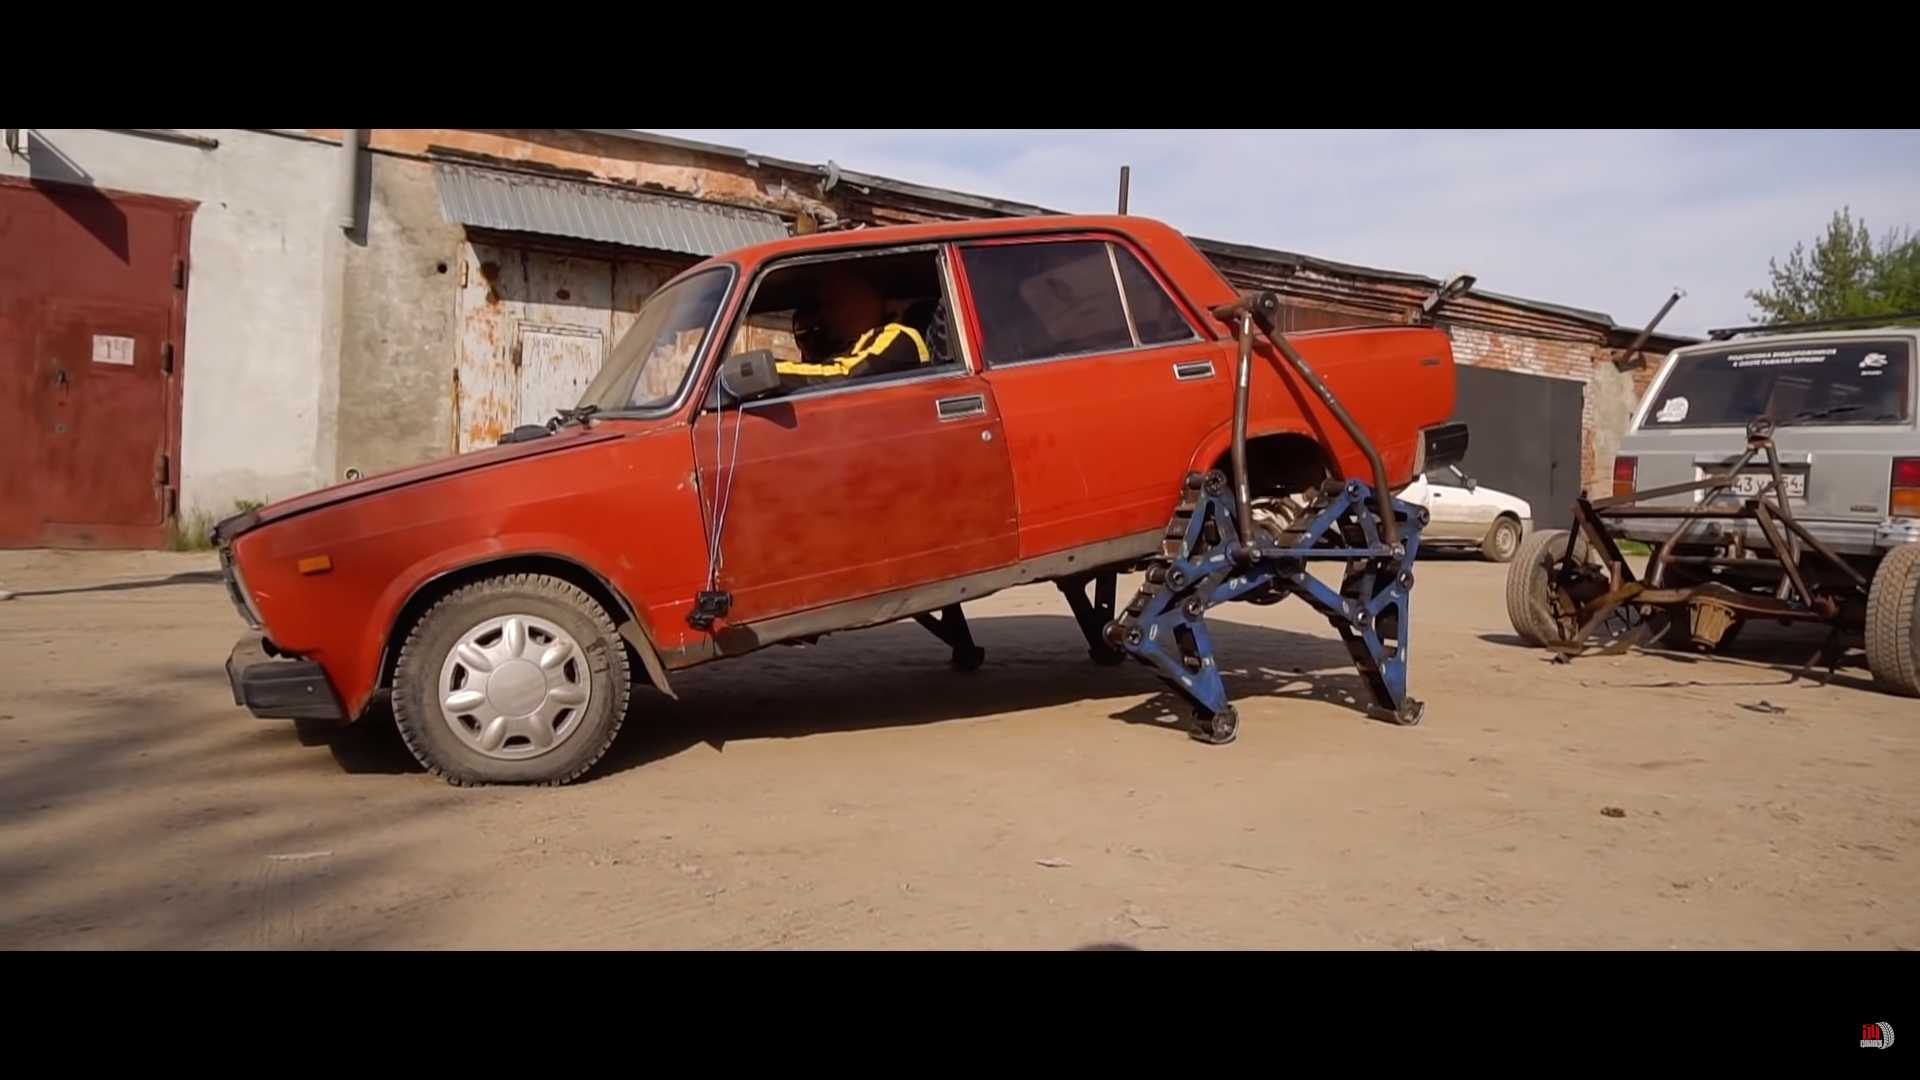 Crazy Lada With Working Legs Proves You Haven't Seen Everything Yet